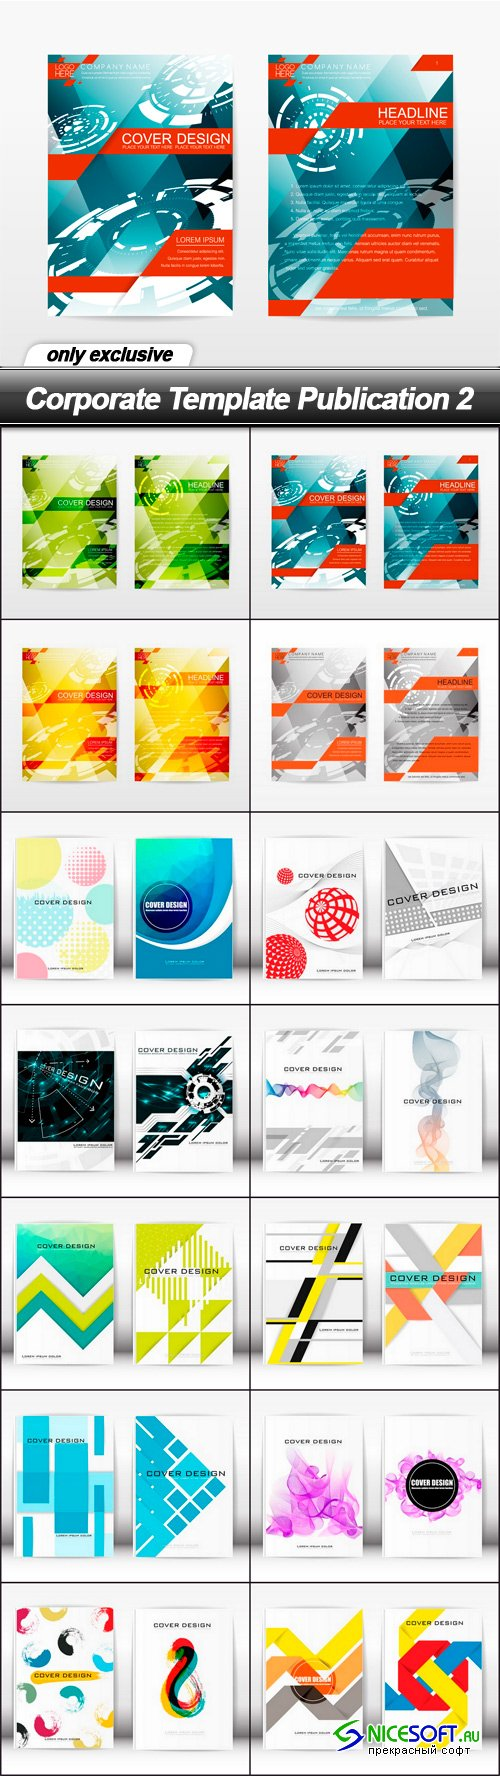 Corporate Template Publication 2